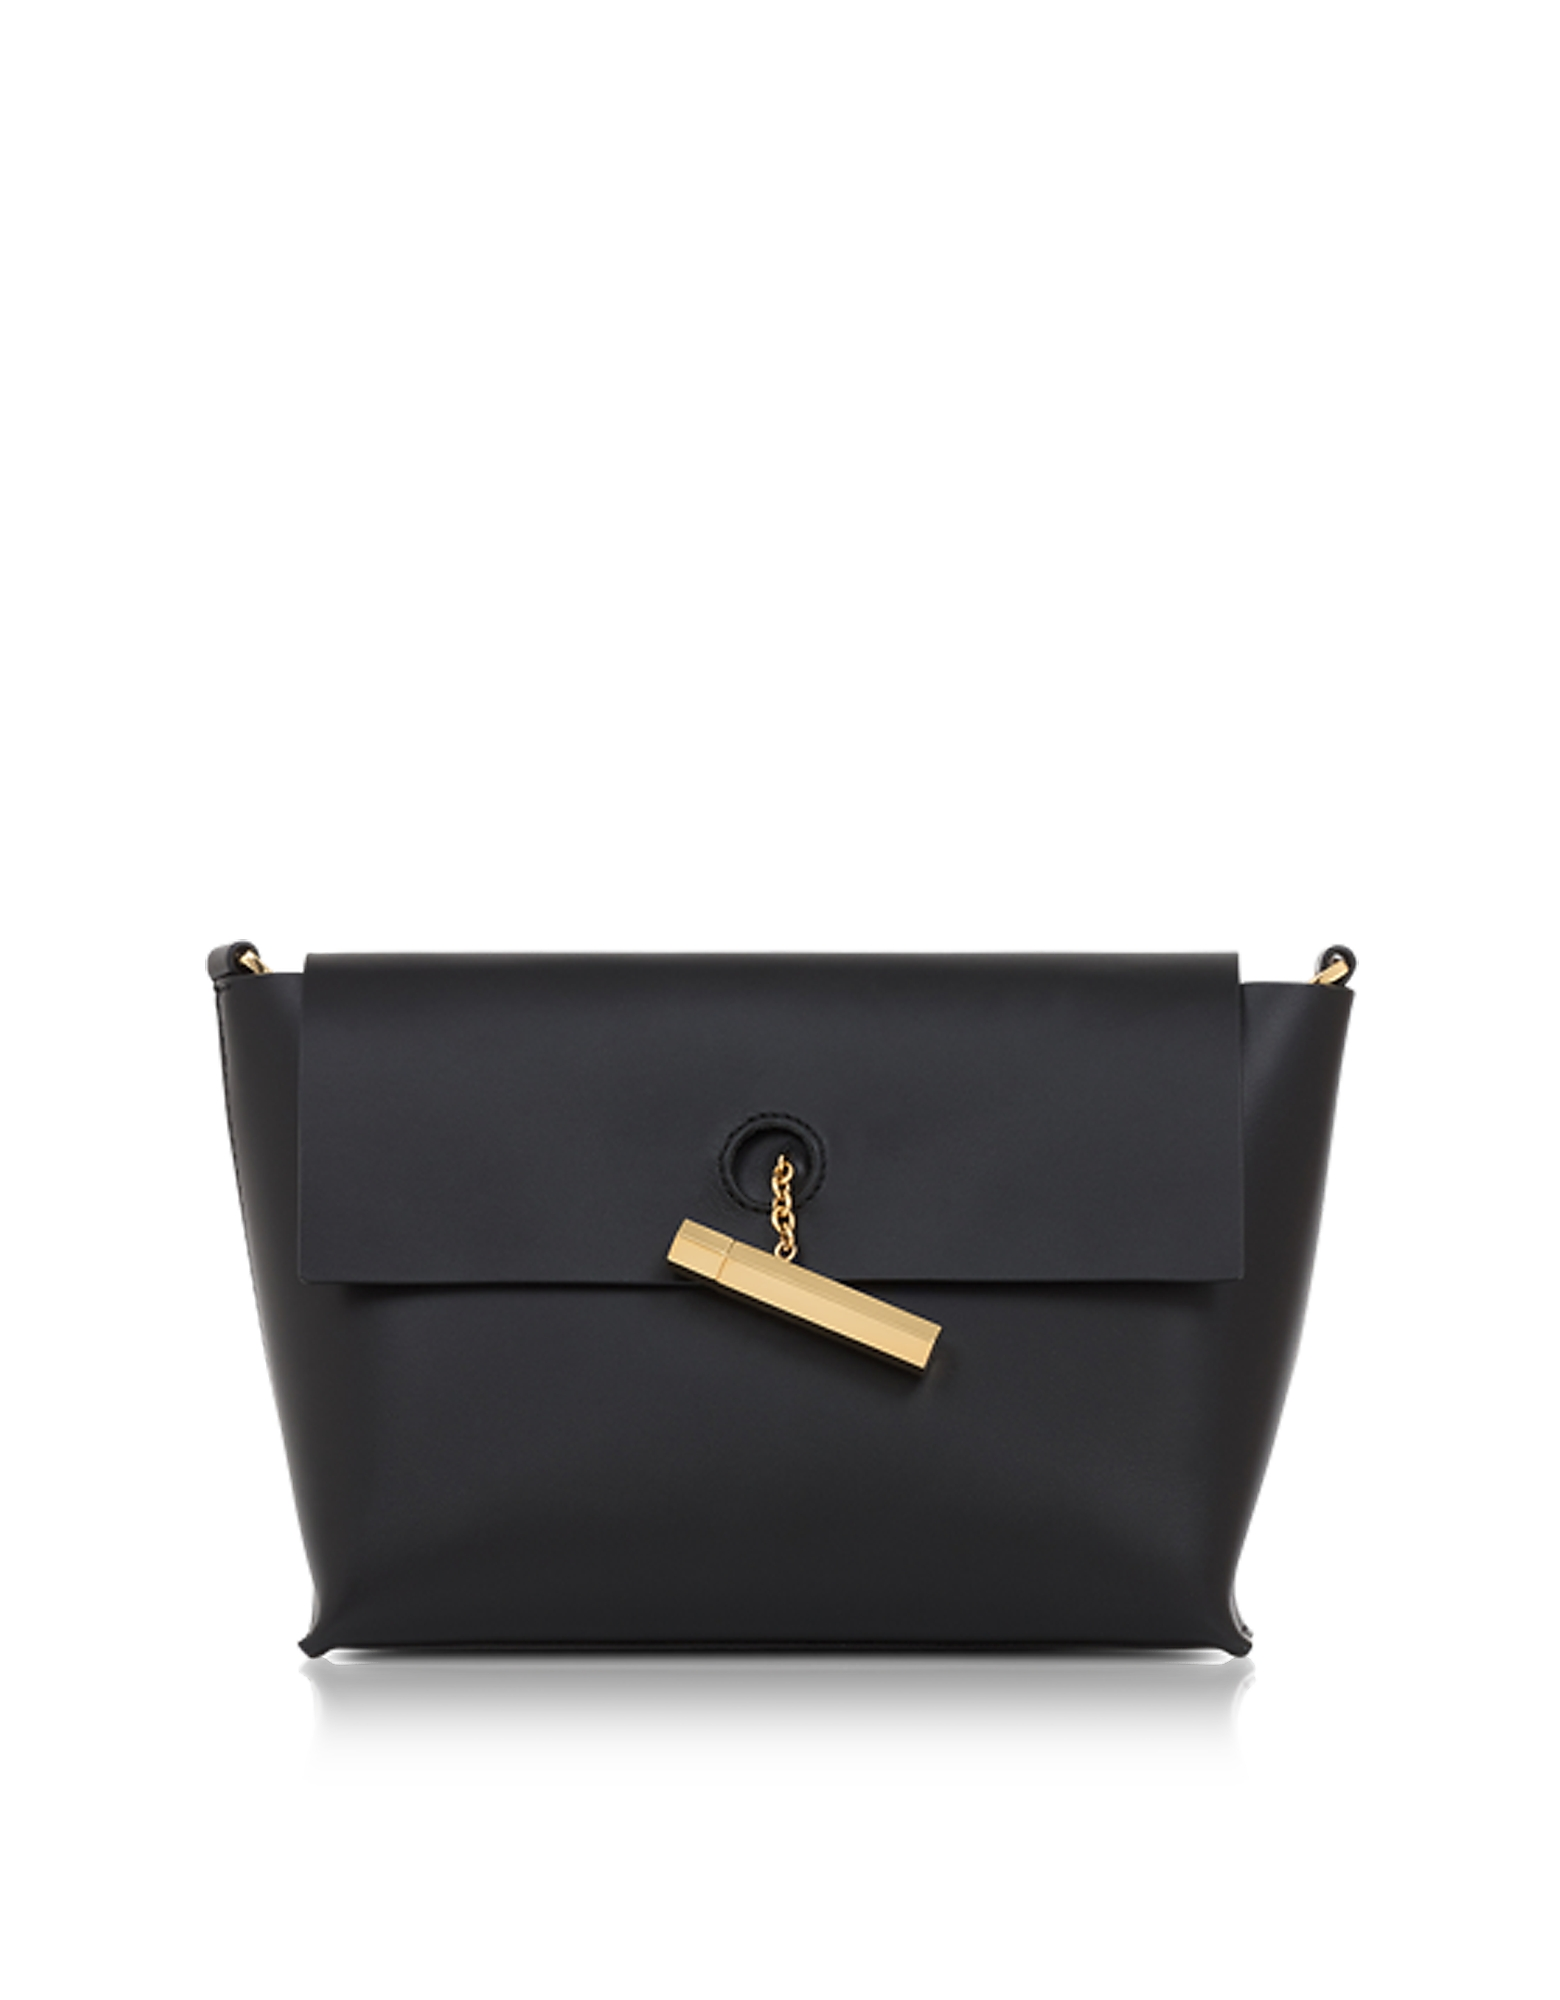 Sophie Hulme Handbags, Black Pinch Crossbody Bag